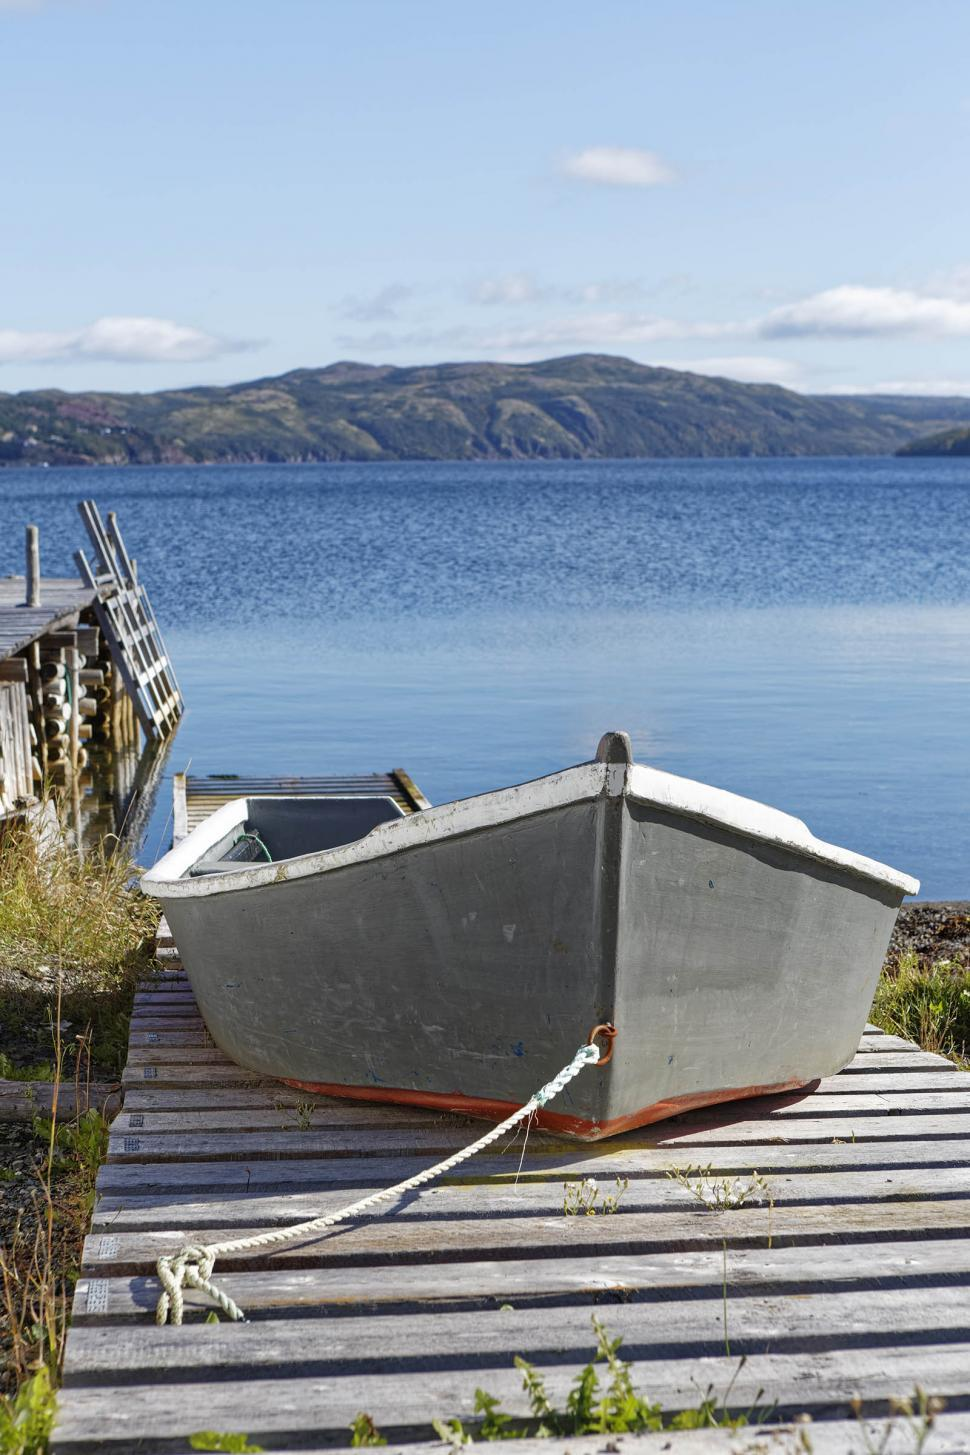 Download Free Stock Photo of Fishing boat